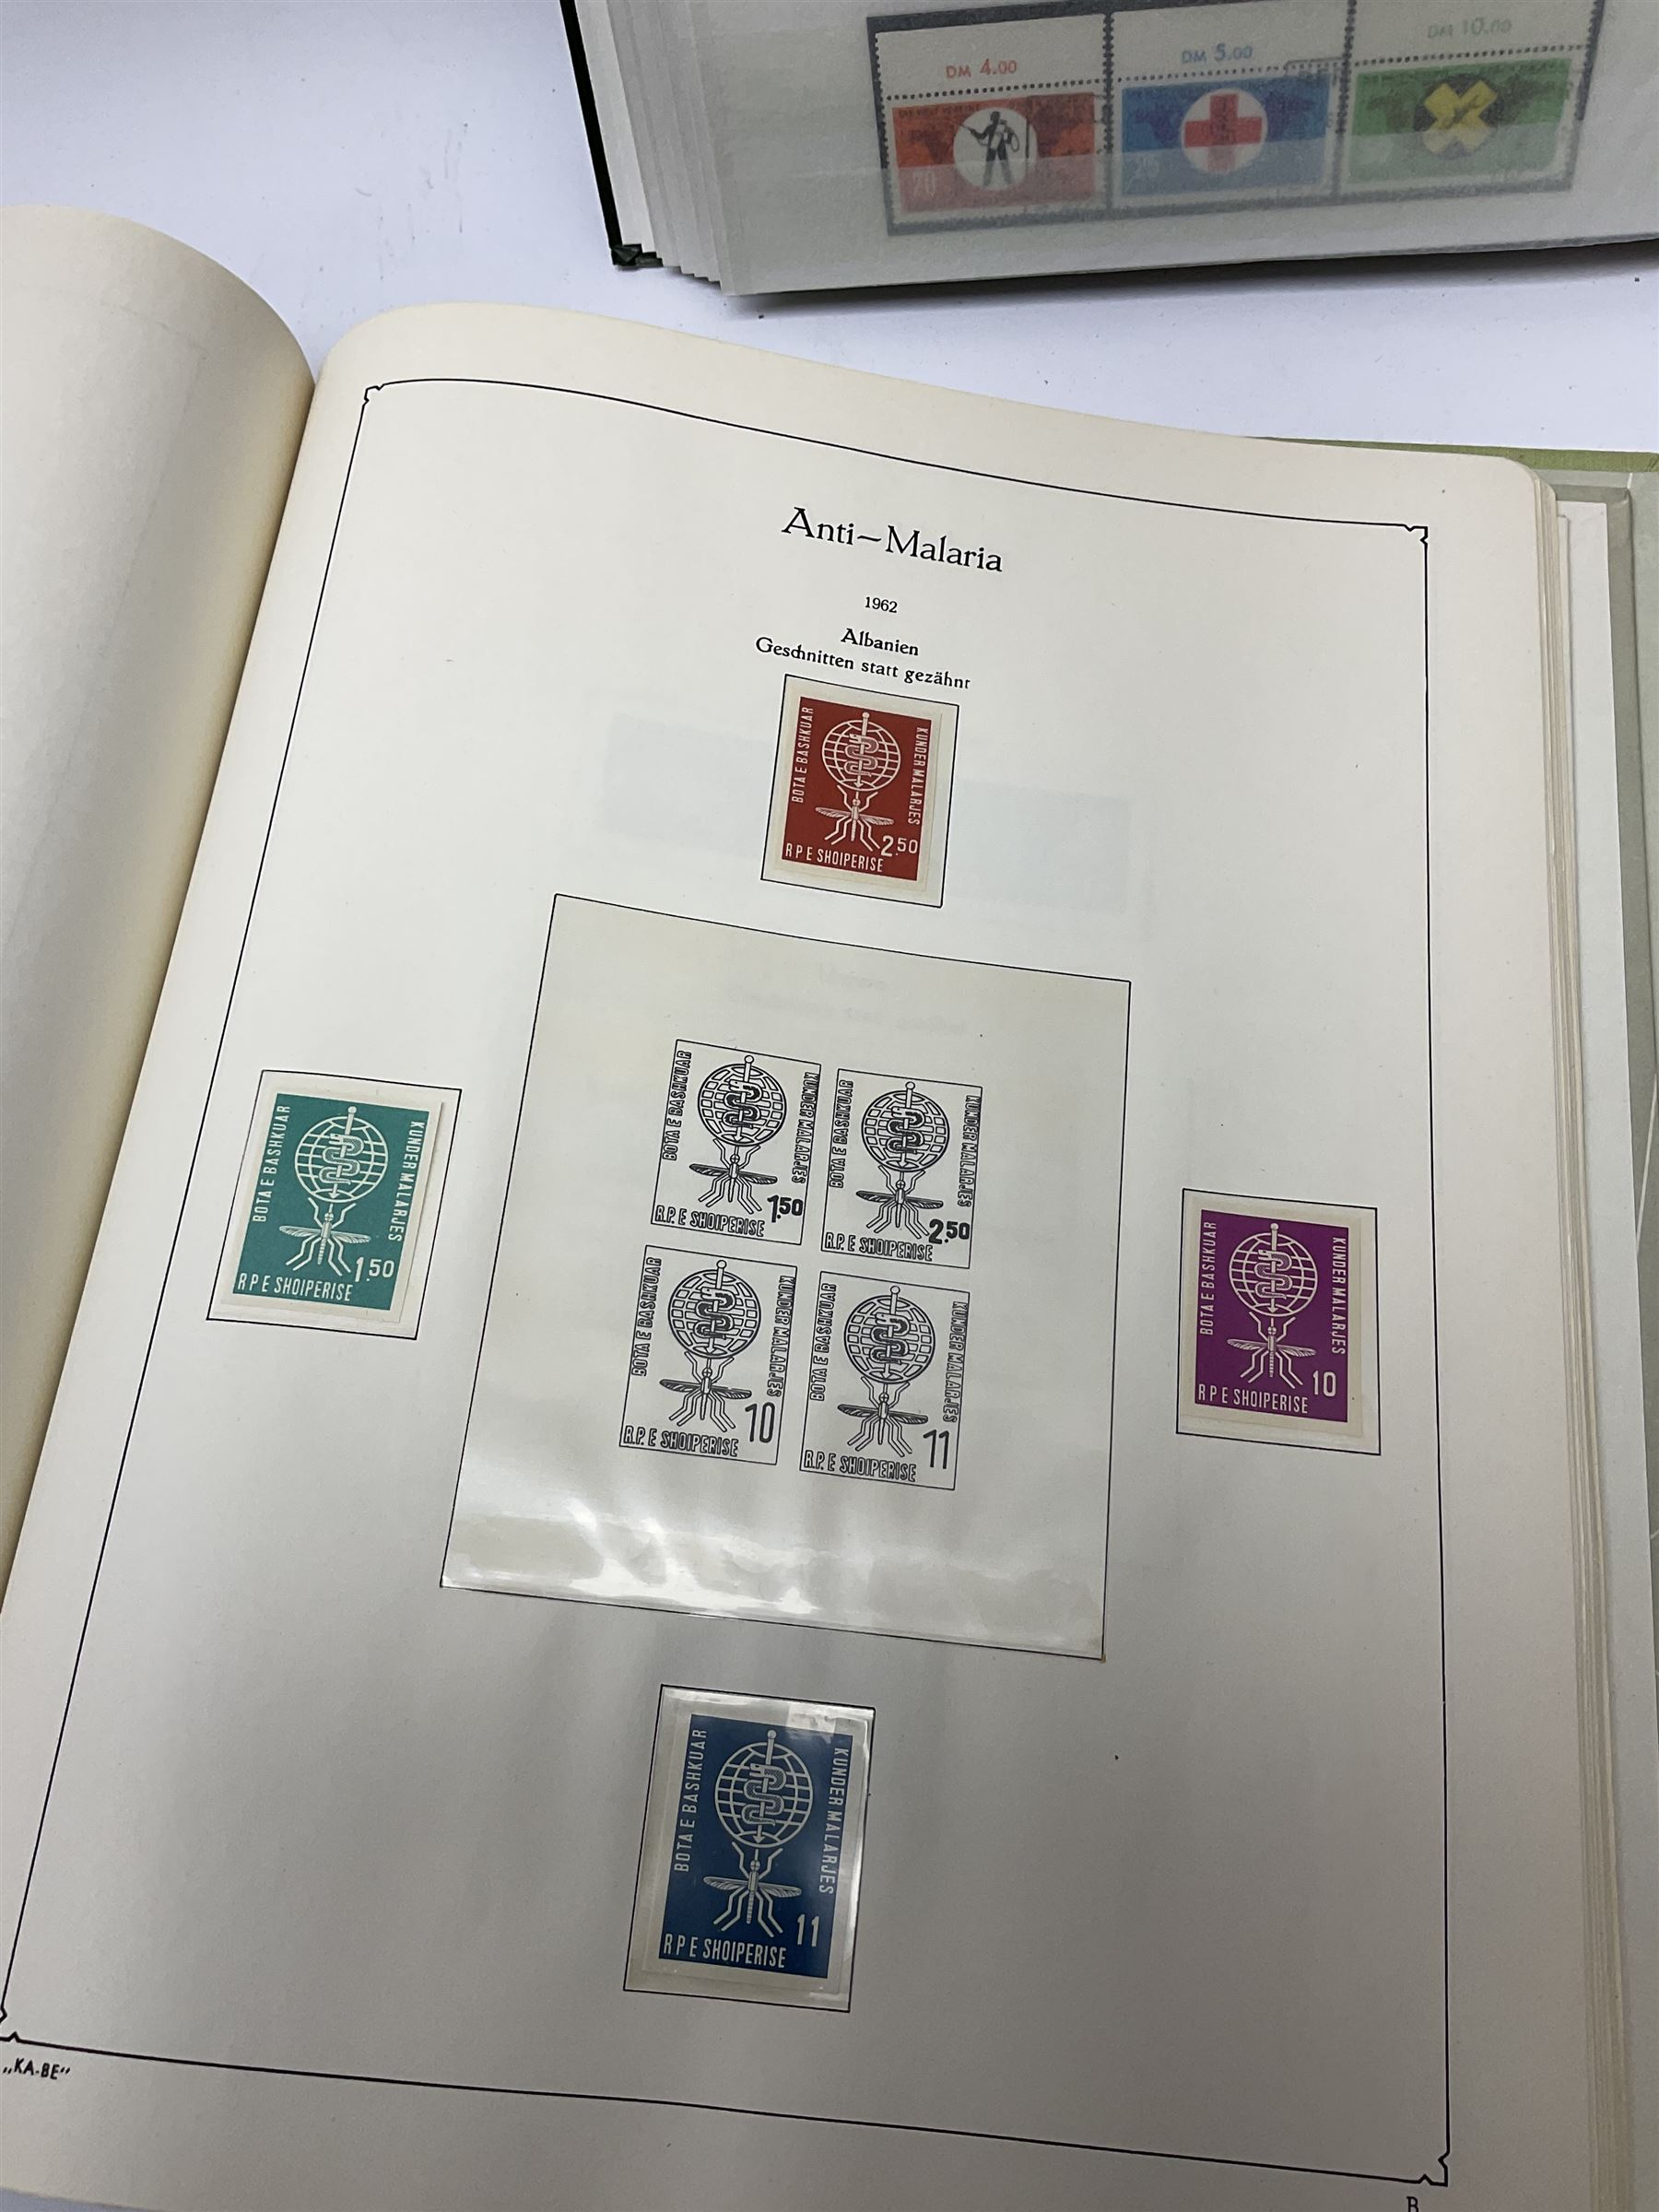 Stamps mostly relating to 'The World Against Malaria' from various Countries including Angola - Image 13 of 17